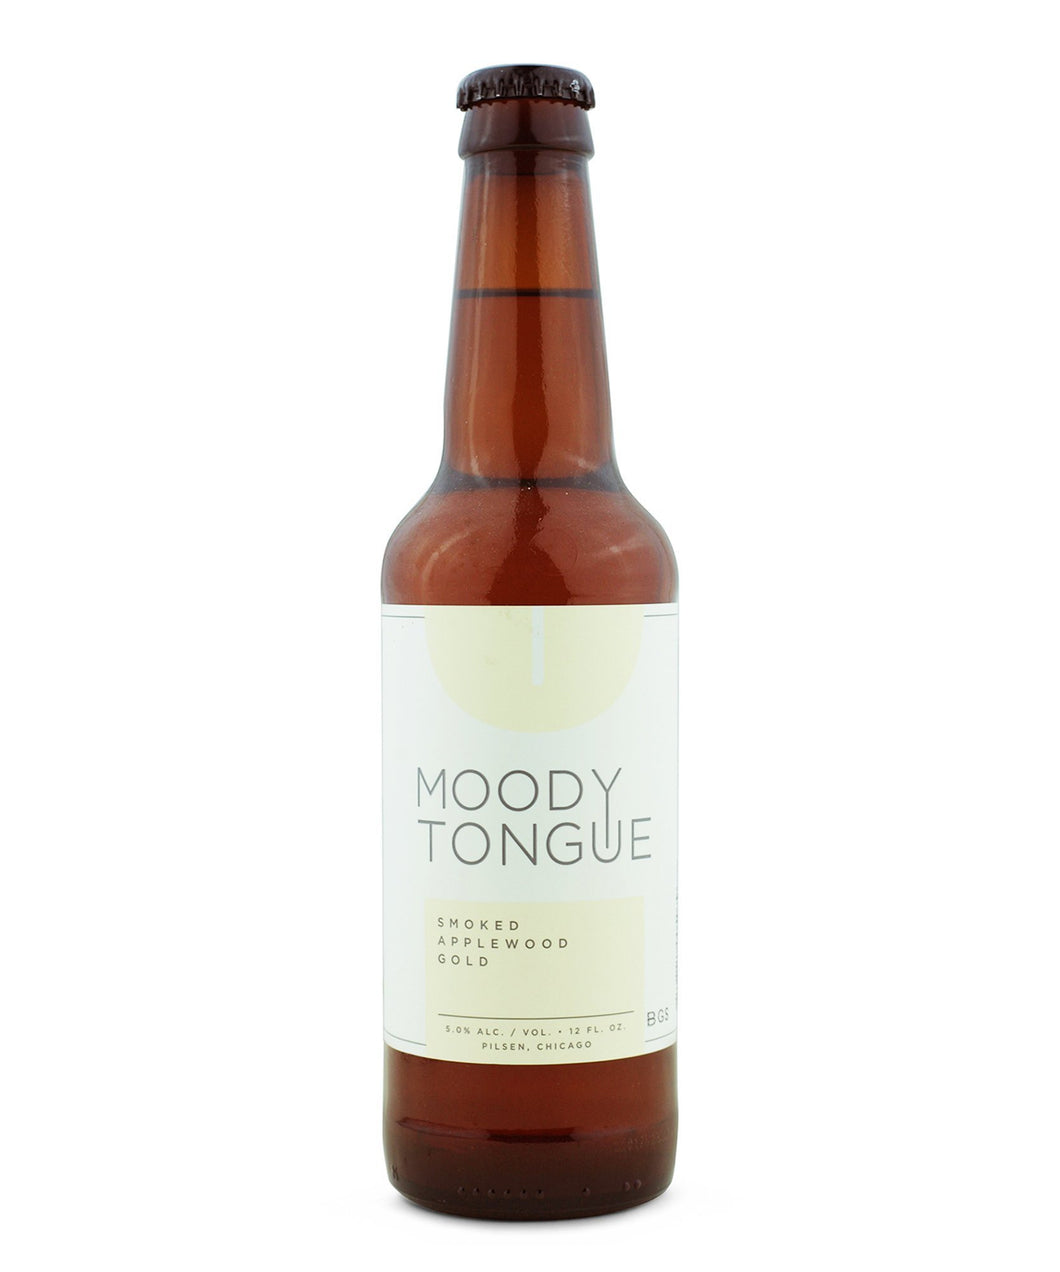 Smoked Applewood Gold - Moody Tongue Brewing Company Delivered By TapRm